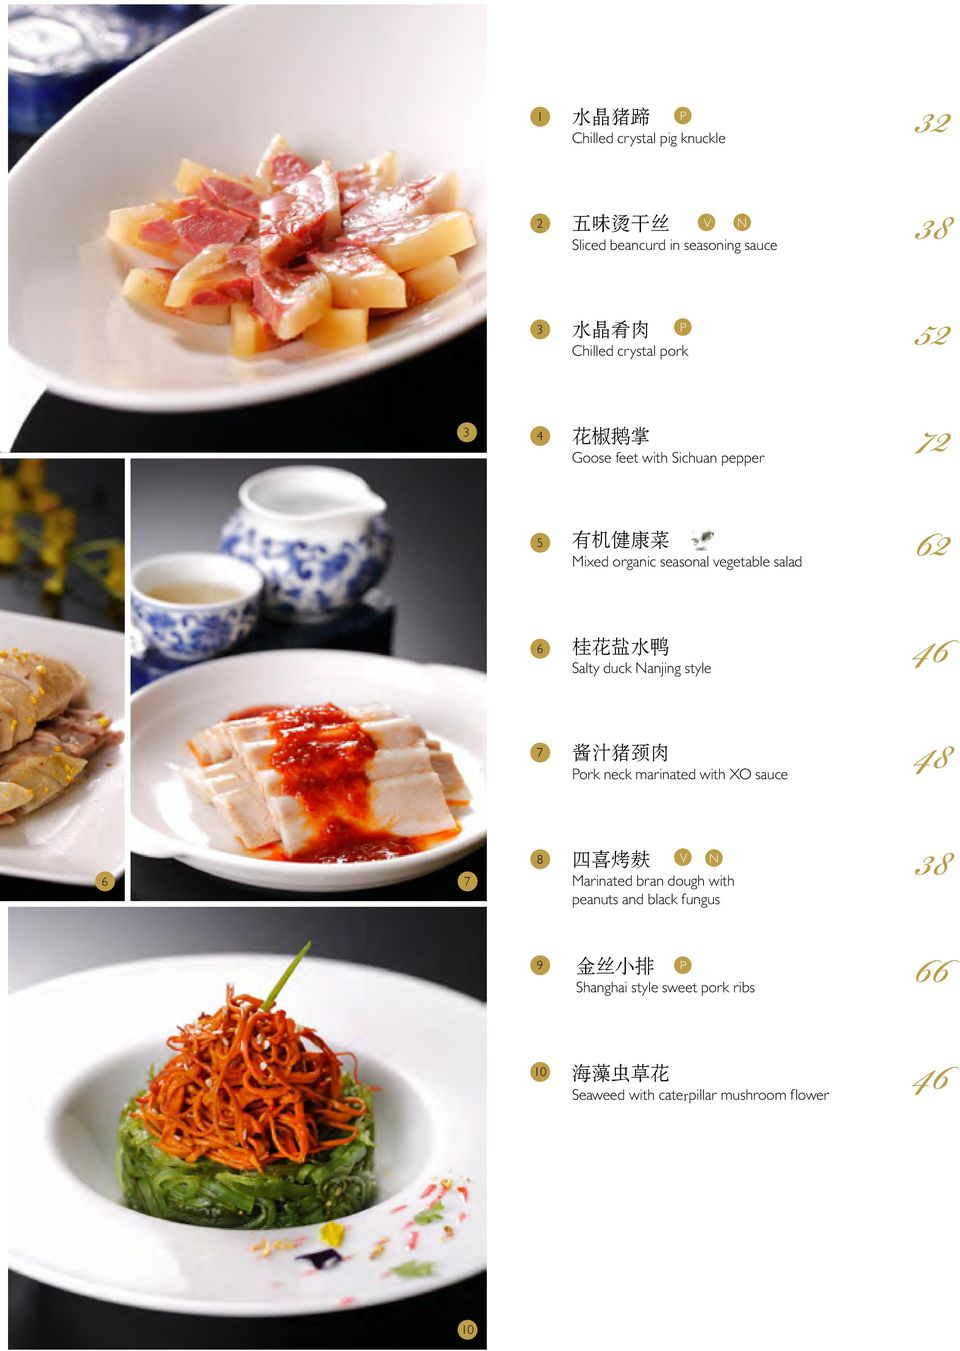 花 盐 水 鸭 Salty duck Nanjing style 48 酱 汁 猪 颈 肉 ork neck marinated with XO sauce 6 7 8 四 喜 烤 麸 V N Marinated bran dough with